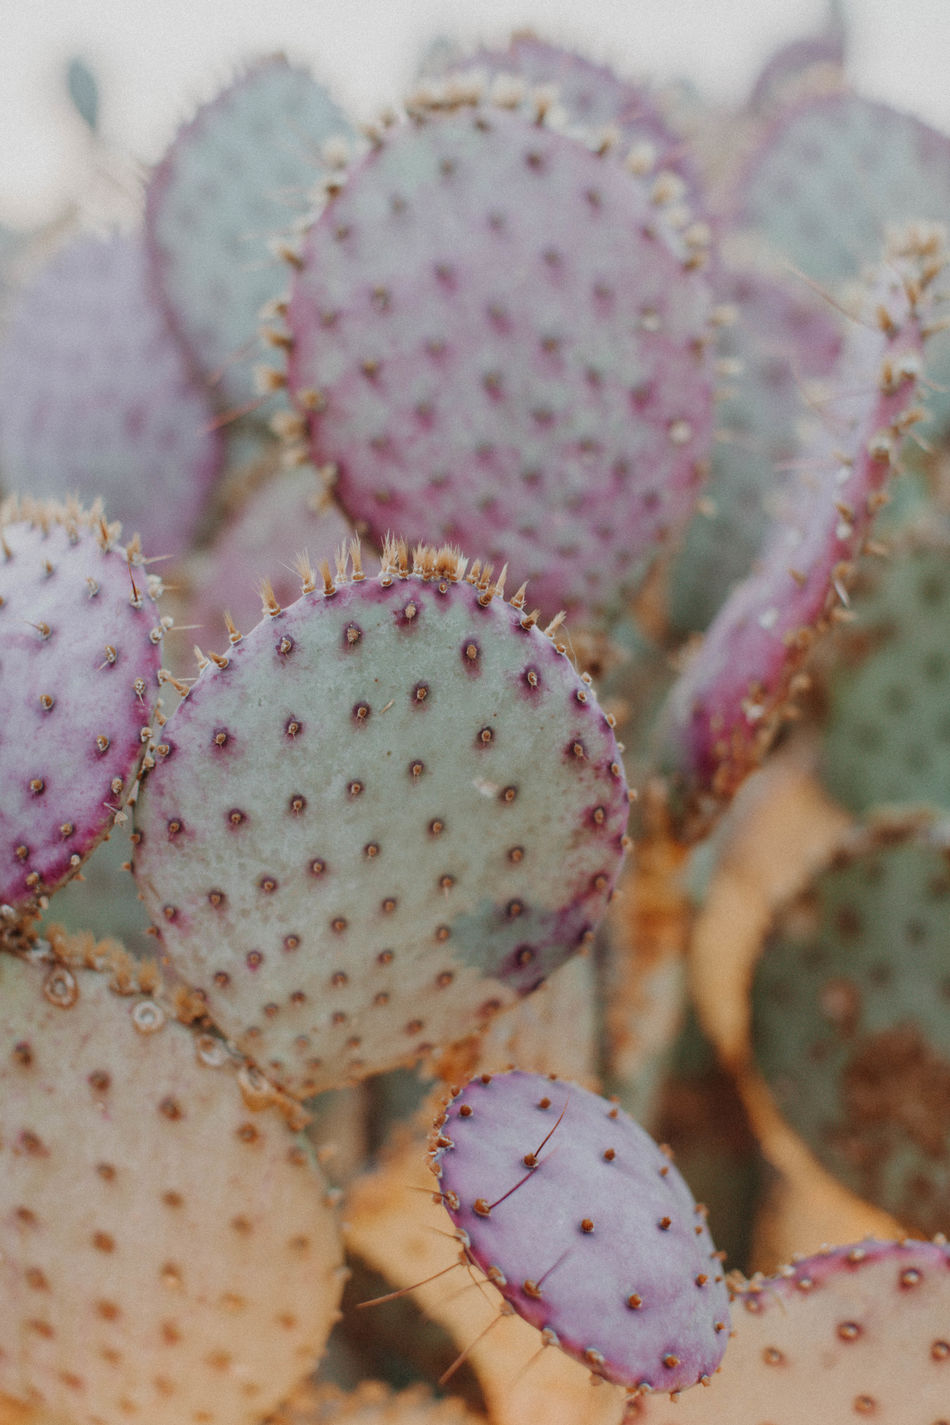 Beauty In Nature Cacti Cactus Cactus Close-up Day Desert Desert Beauty Desert Life Fresh On Eyeem  Freshness Nature No People Outdoors Plant Prickly Pear Prickly Pear Cactus